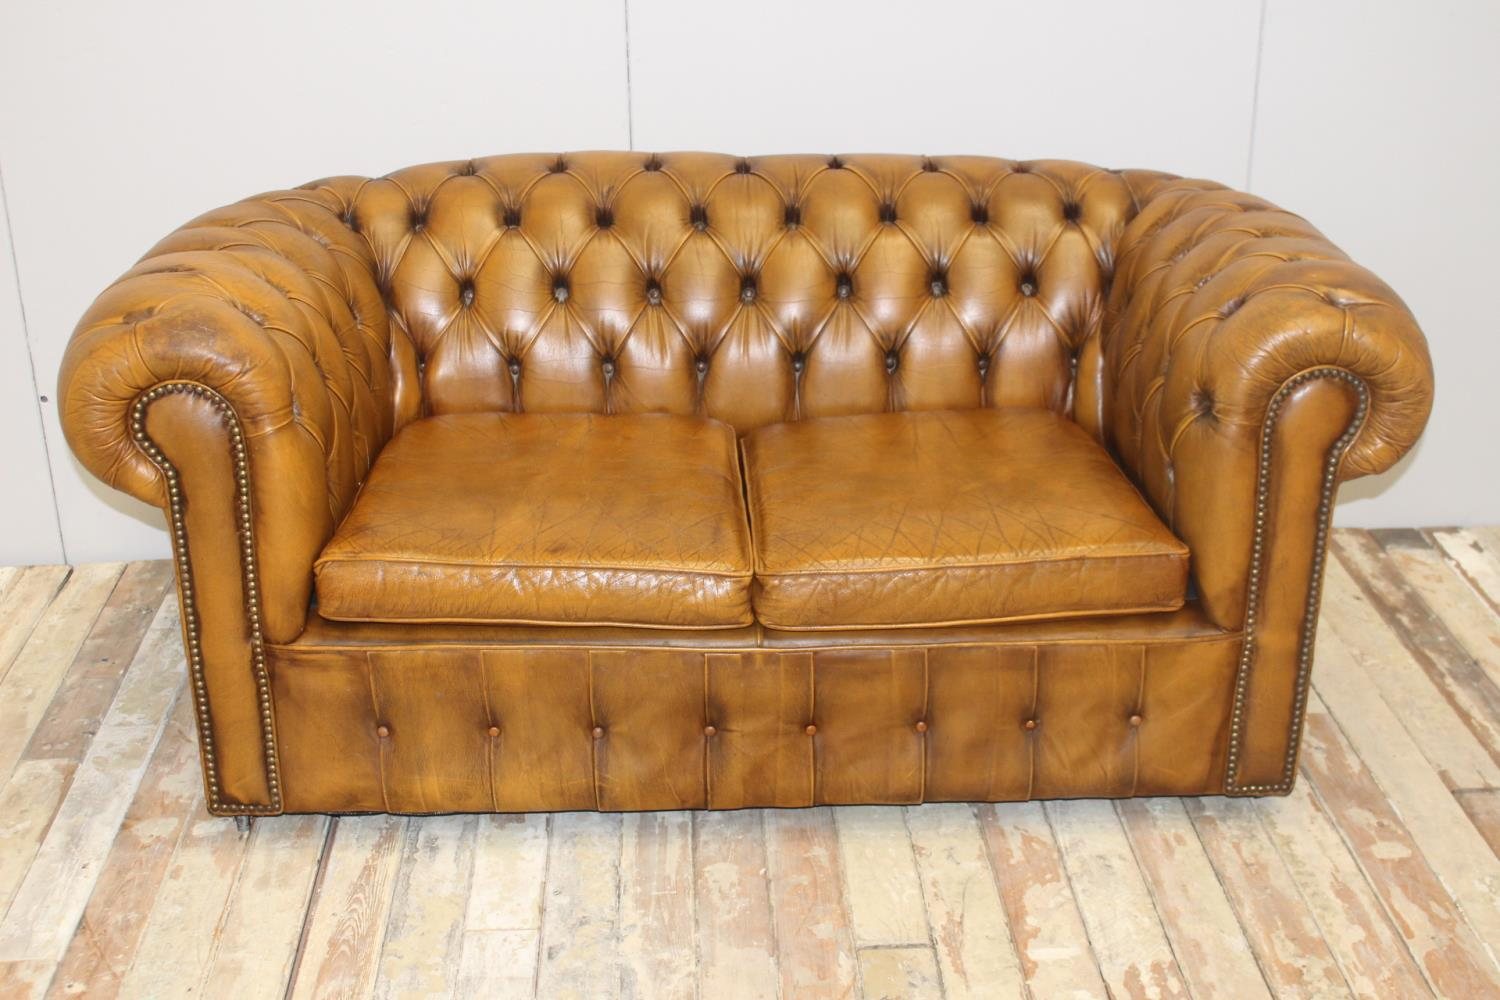 Leather upholstered two seater Chesterfield sofa